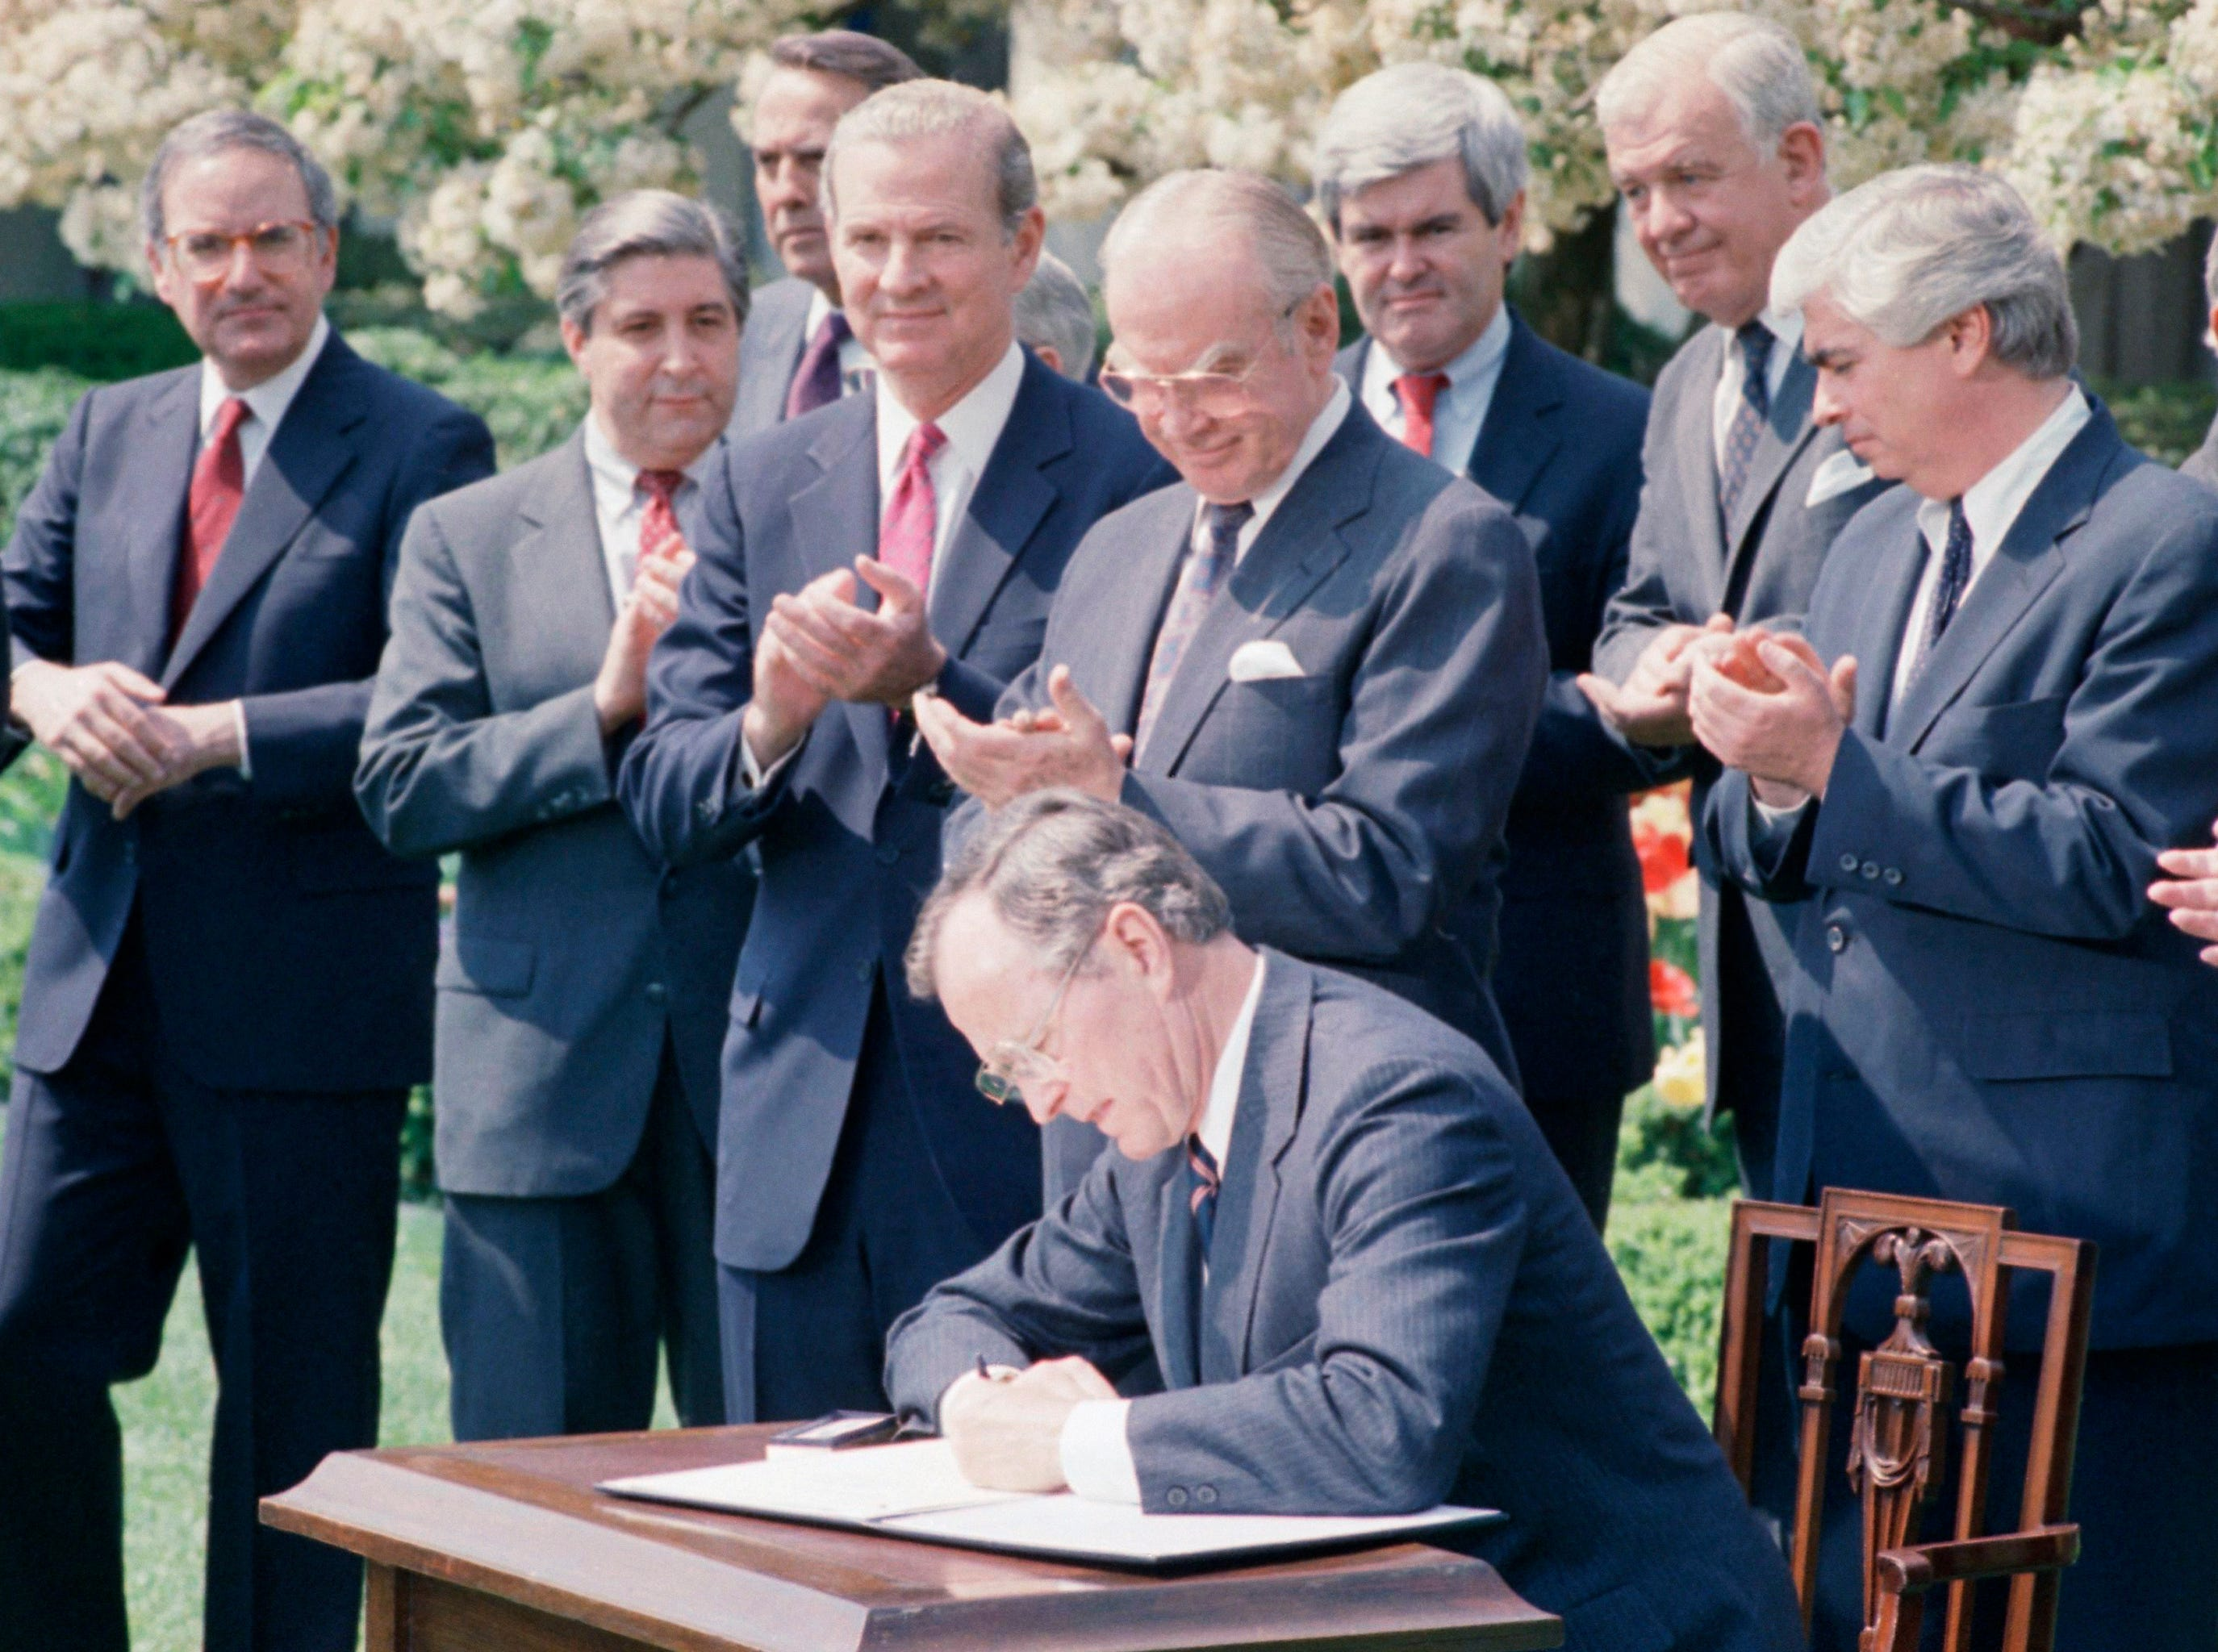 President Bush signs a Central American Bipartisan accord on Tuesday, April 18, 1989 in the White House Rose Garden in Washington. Looking on are from left: Rep. Mickey Edwards, R-Okla; Sen. Robert Dole, R-Kan; Secretary of State James Baker; House Speaker Jim Wright of Texas and Rep Whip Newt Gingrich of Ga. (AP Photo/Barry Thumma)